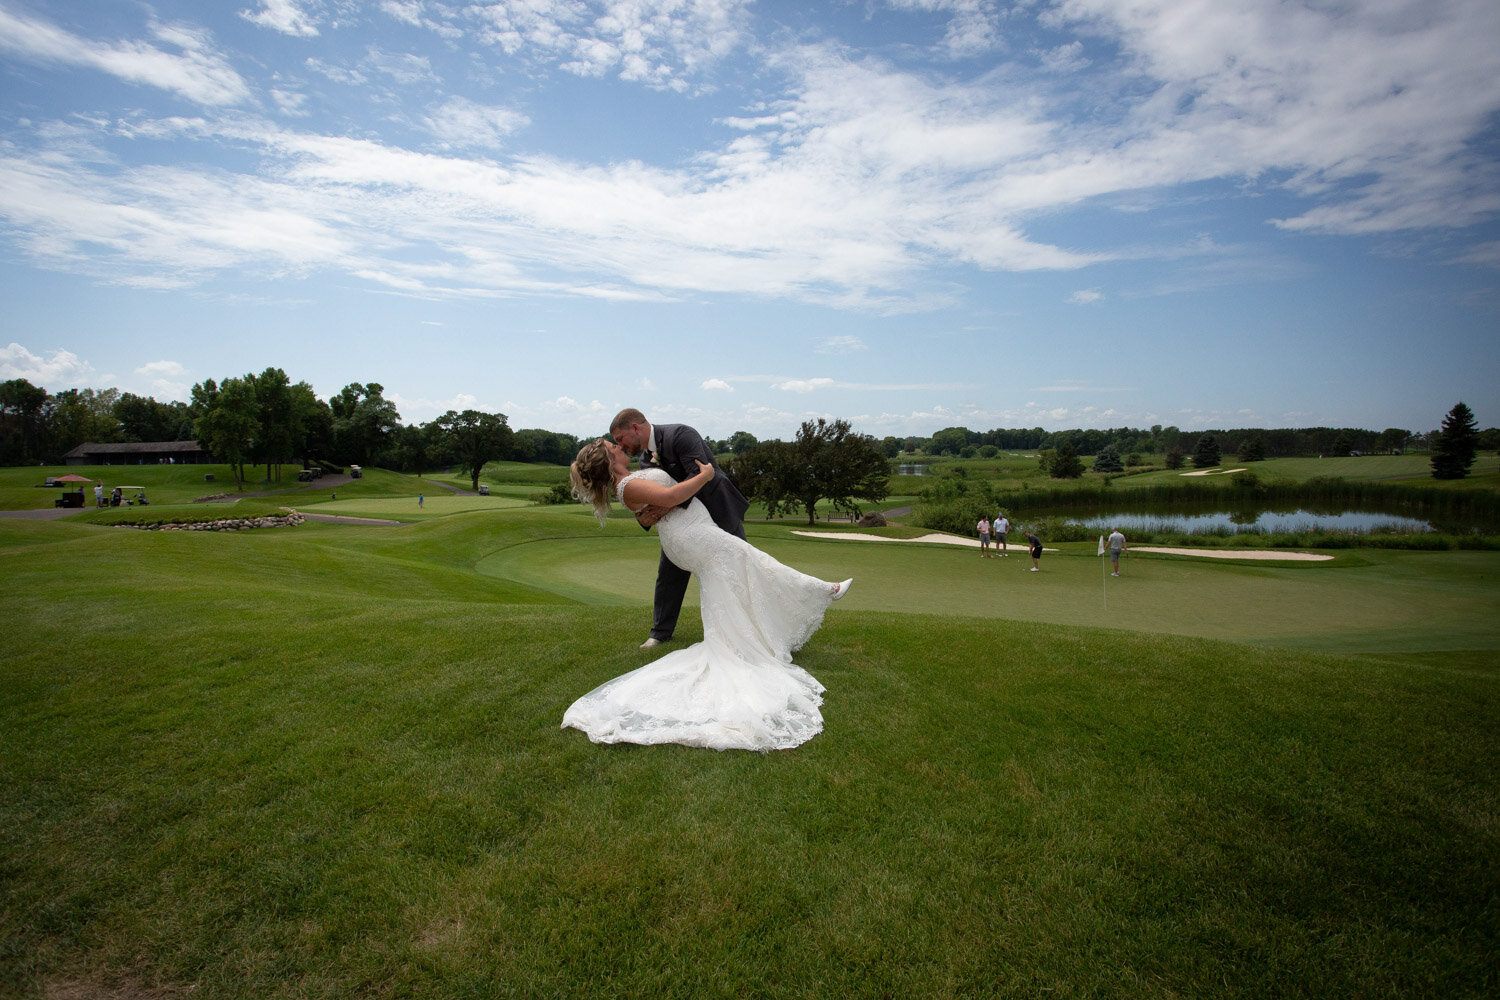 15-rush-creek-golf-course-bride-groom-portrait-outside-path-mahonenphotography-mn-wedding-photographer.jpg